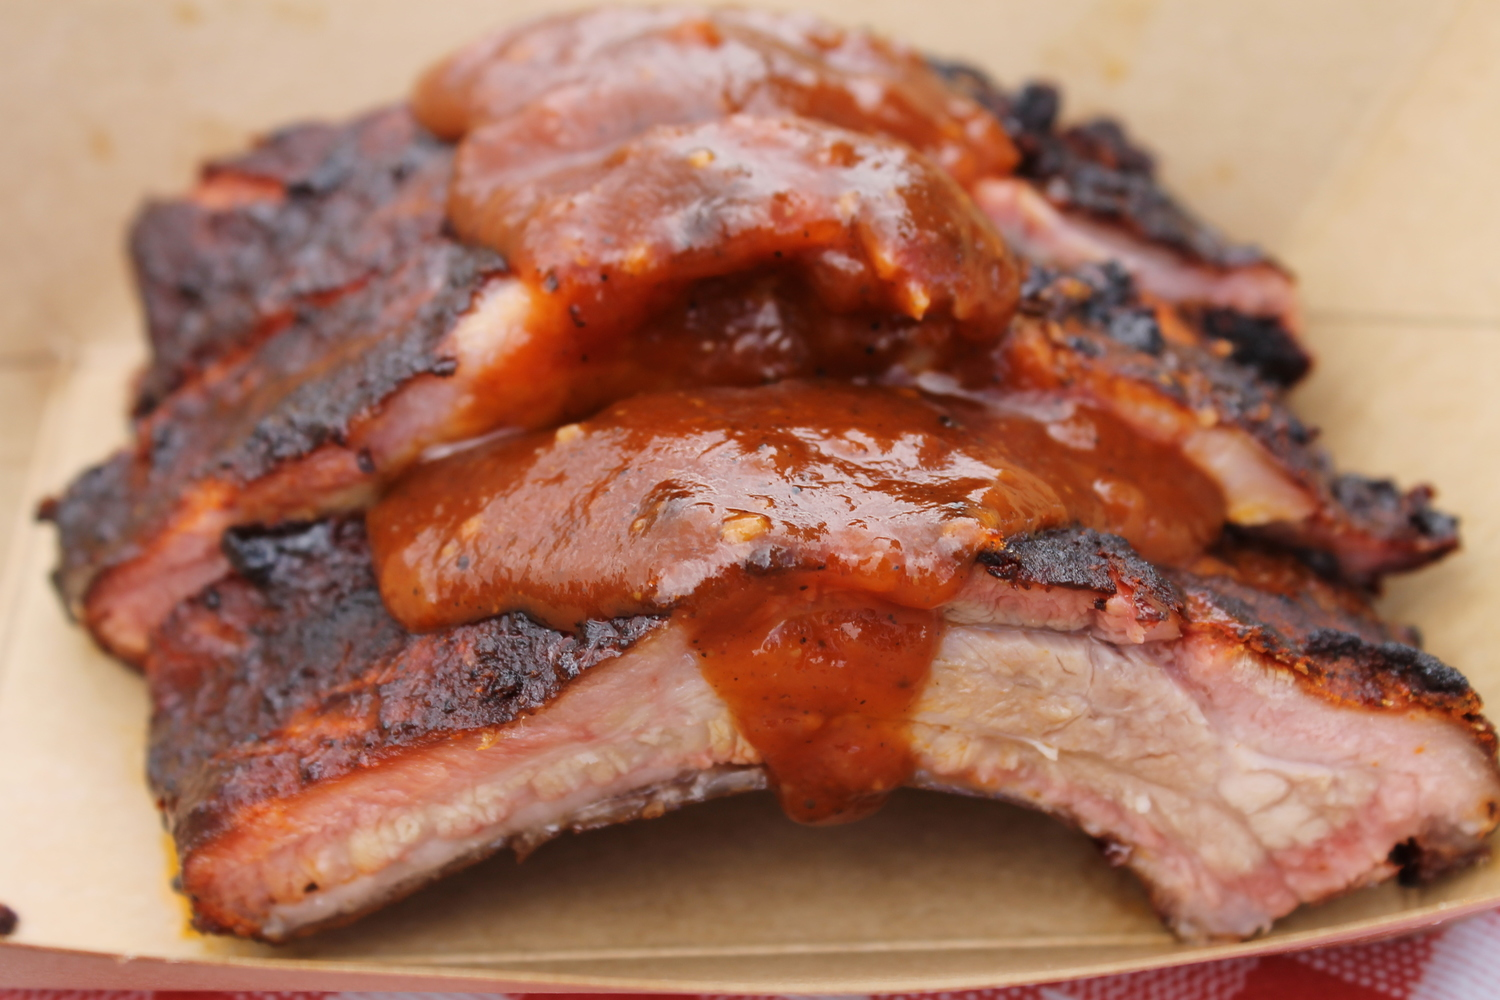 RanchBBQ_Food_Ribs.jpg